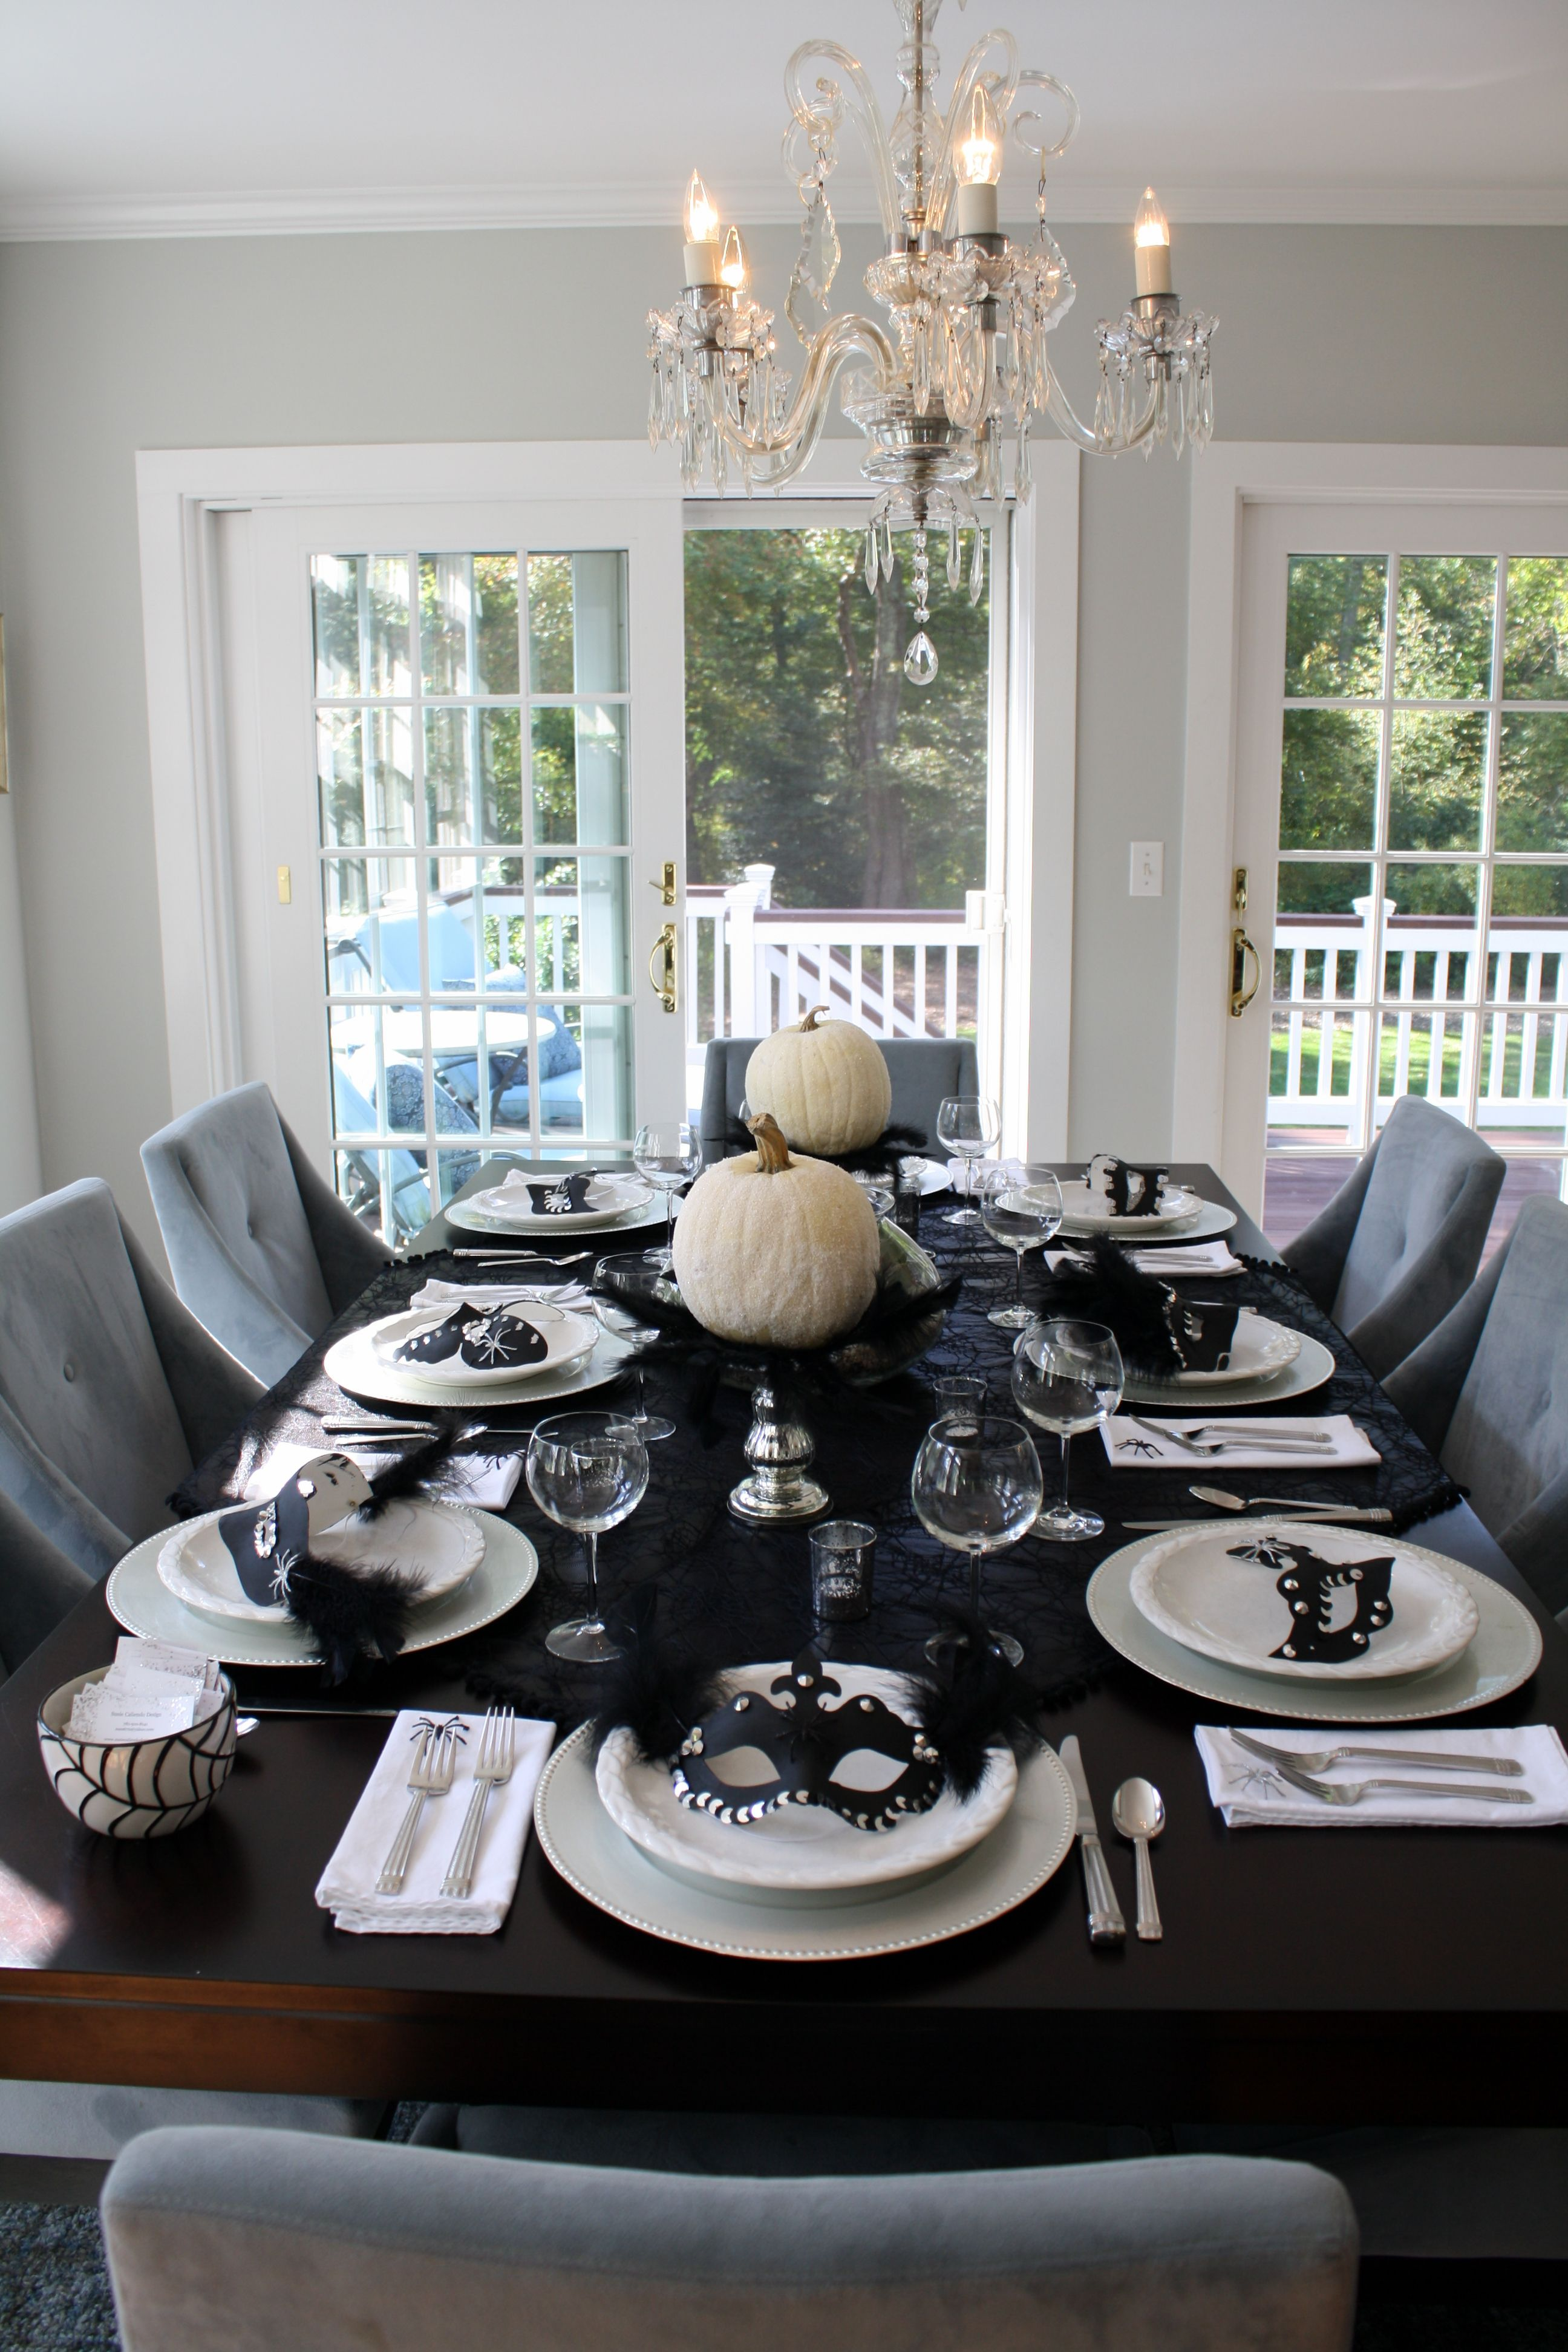 Masquerade Dinner Party Ideas Part - 33: Masquerade Party Dinner Table Layout